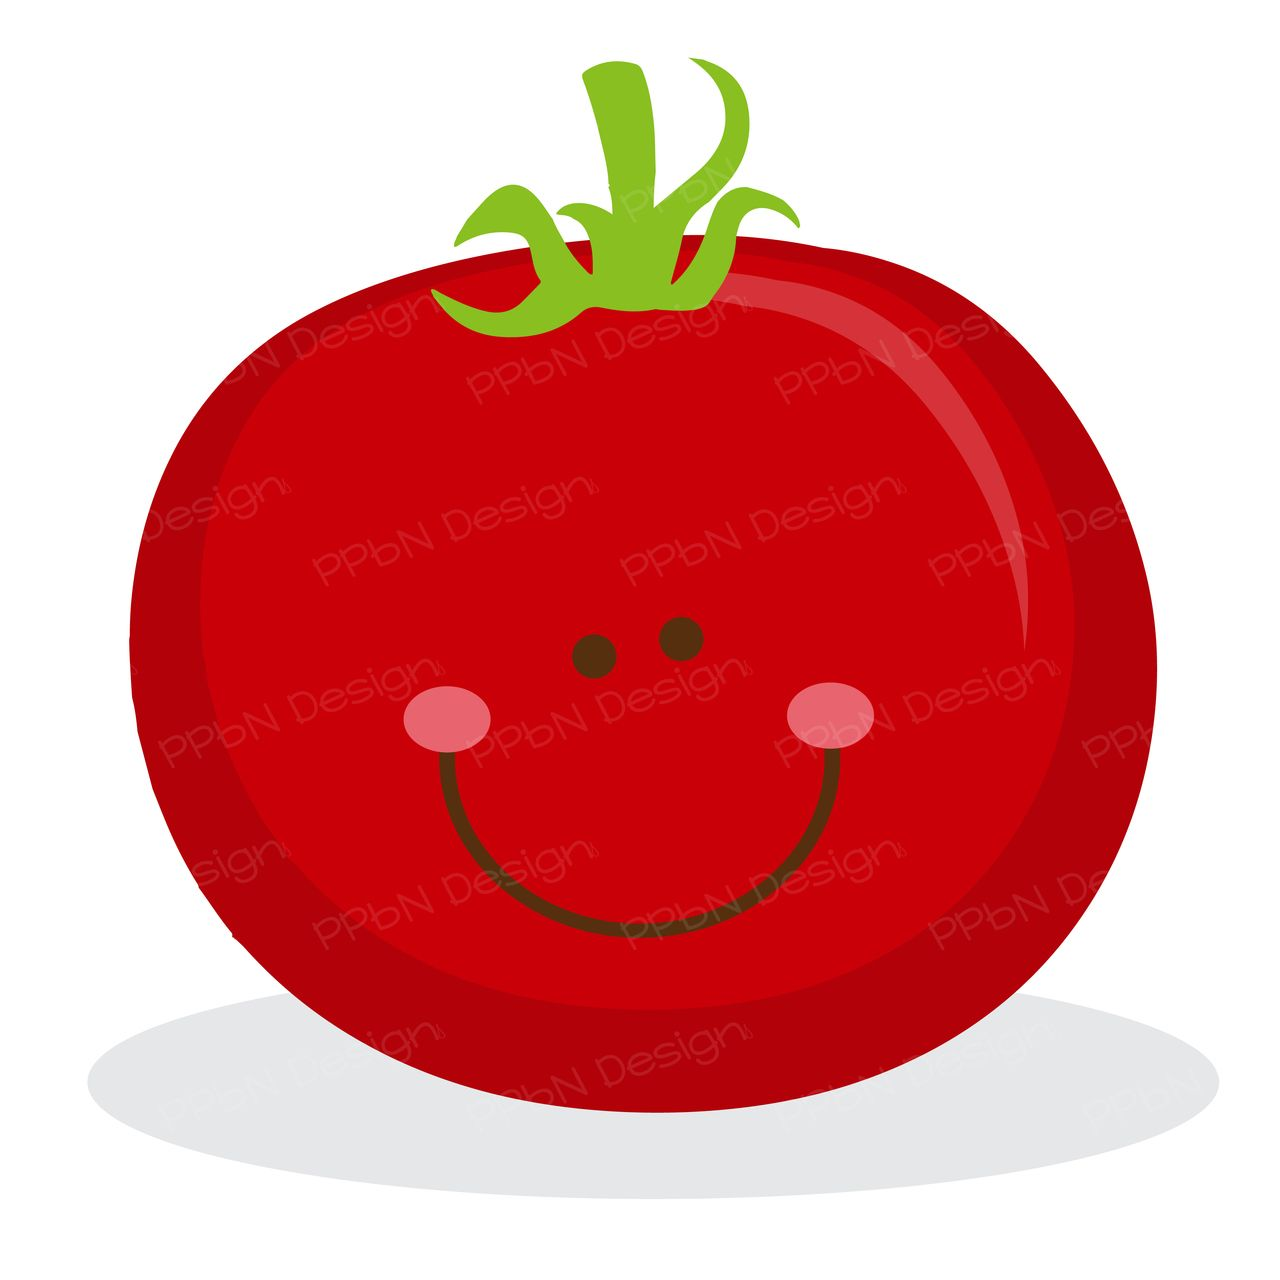 Tomatoes clipart smile. Pin by lisa denny